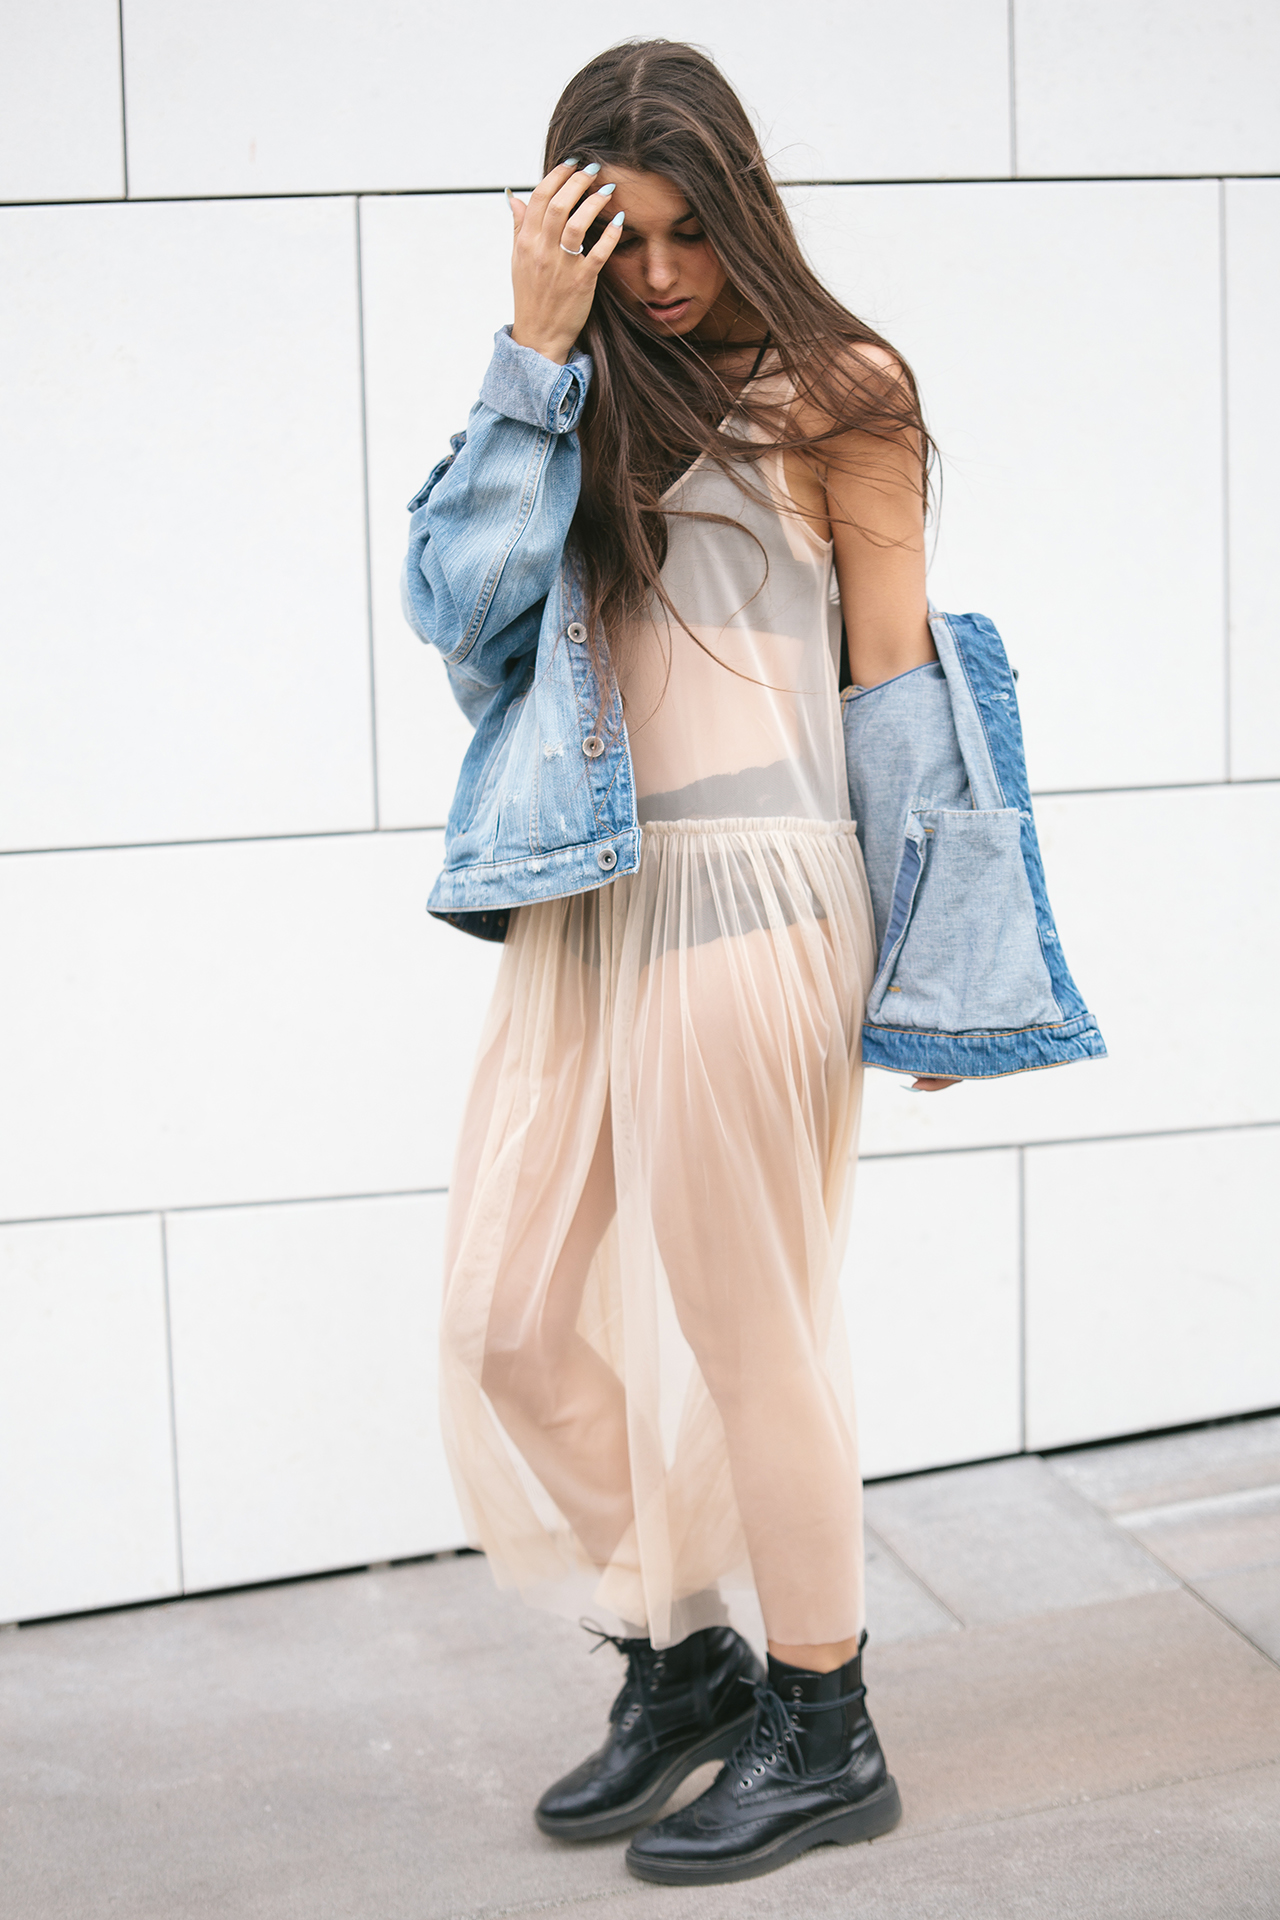 03 - TRANSPARENCE OUTFIT INSPIRATION - vogparty